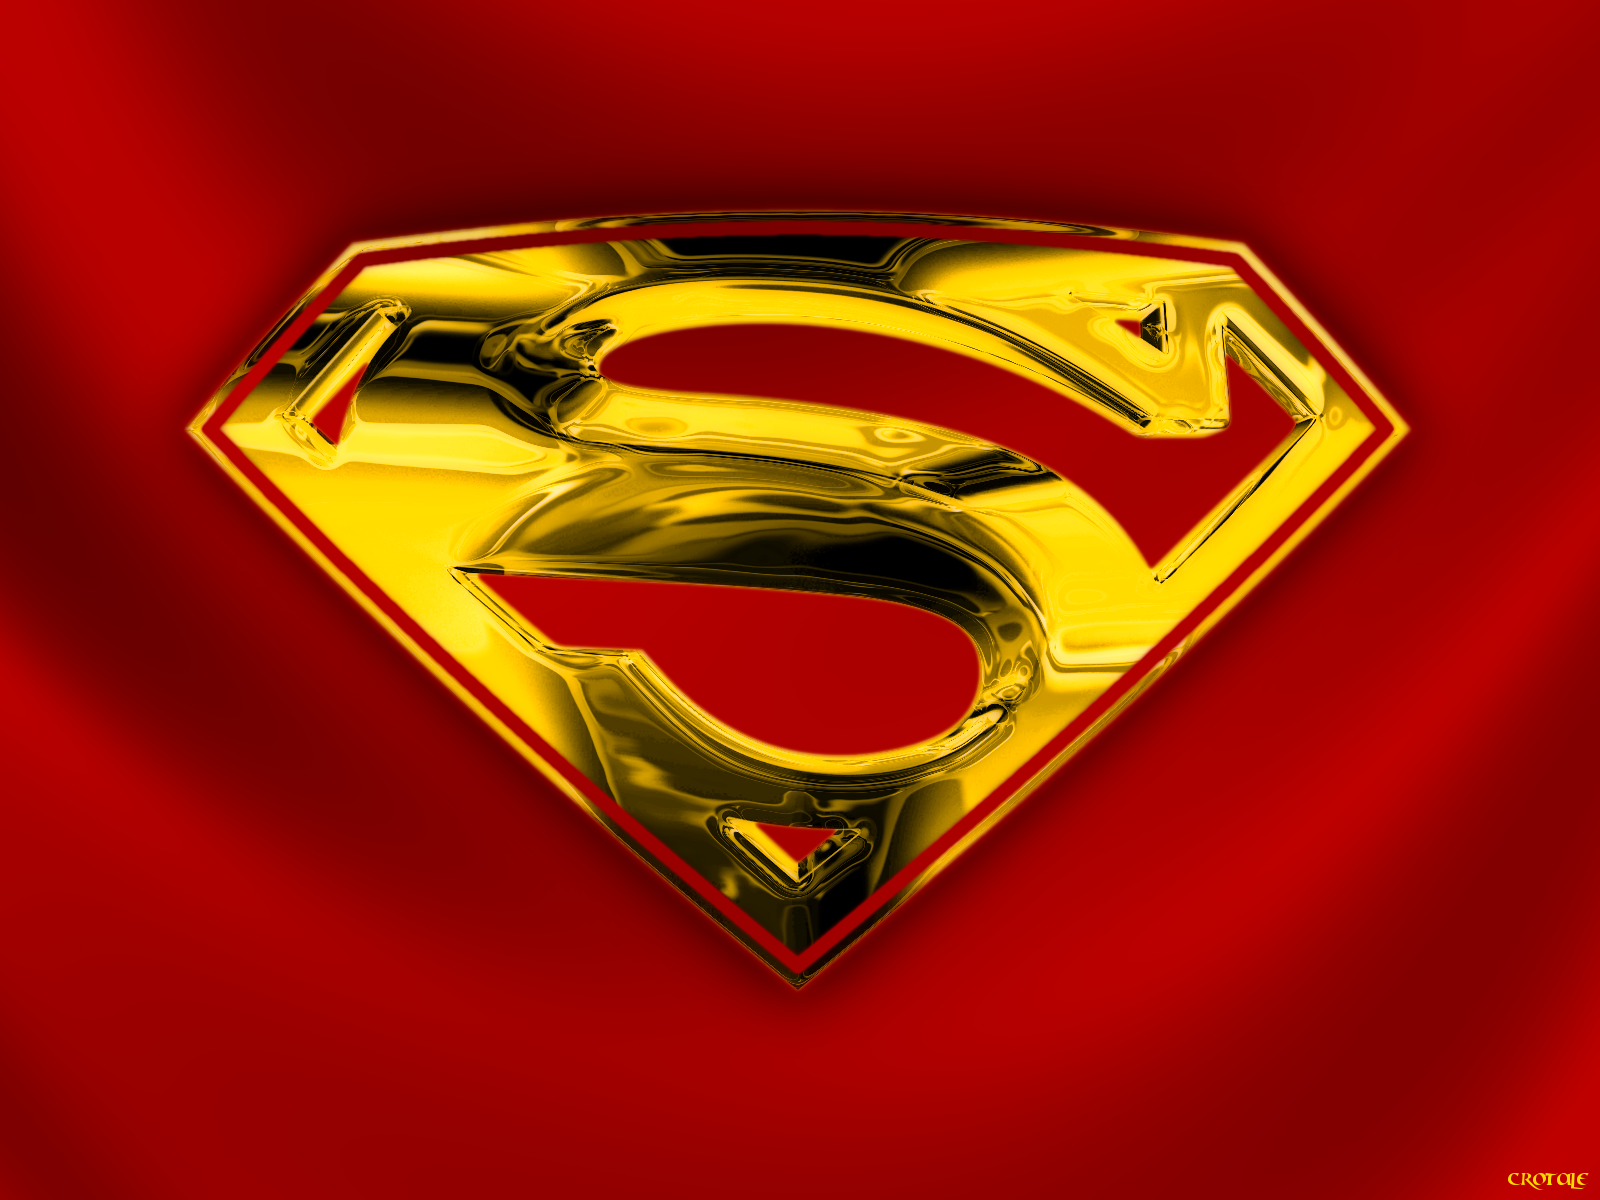 Superman Shield Wallpaper Images Pictures   Becuo 1600x1200